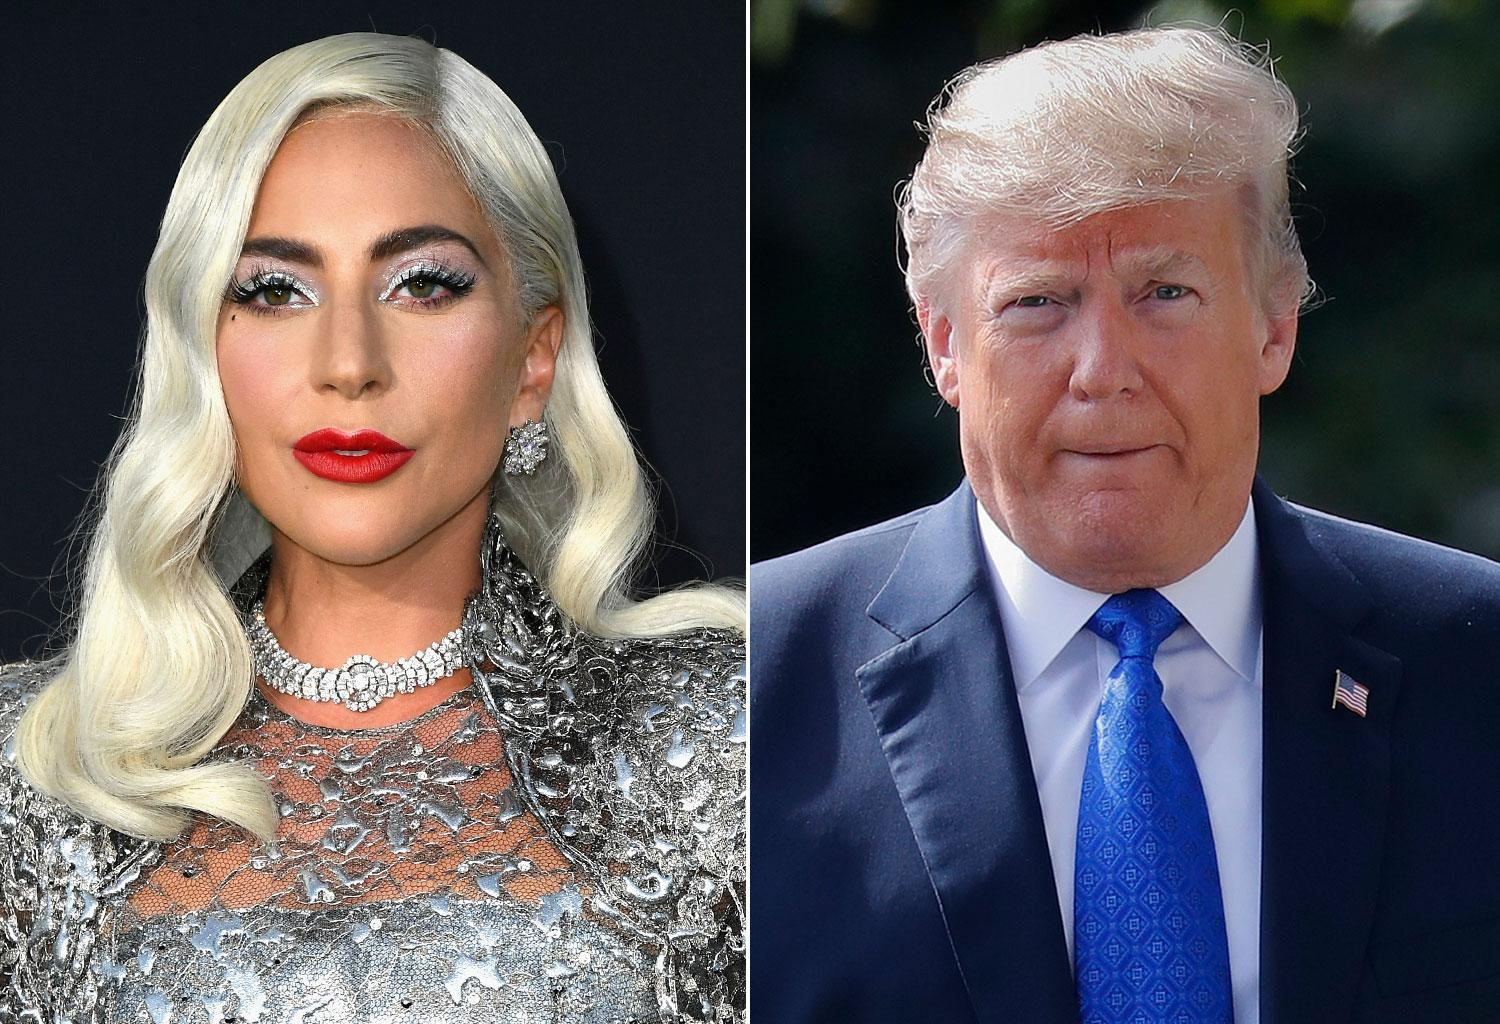 Lady Gaga Slams 'Fool' Donald Trump For Failing Everyone In Passionate Message About George Floyd's Murder And Fighting Racism!